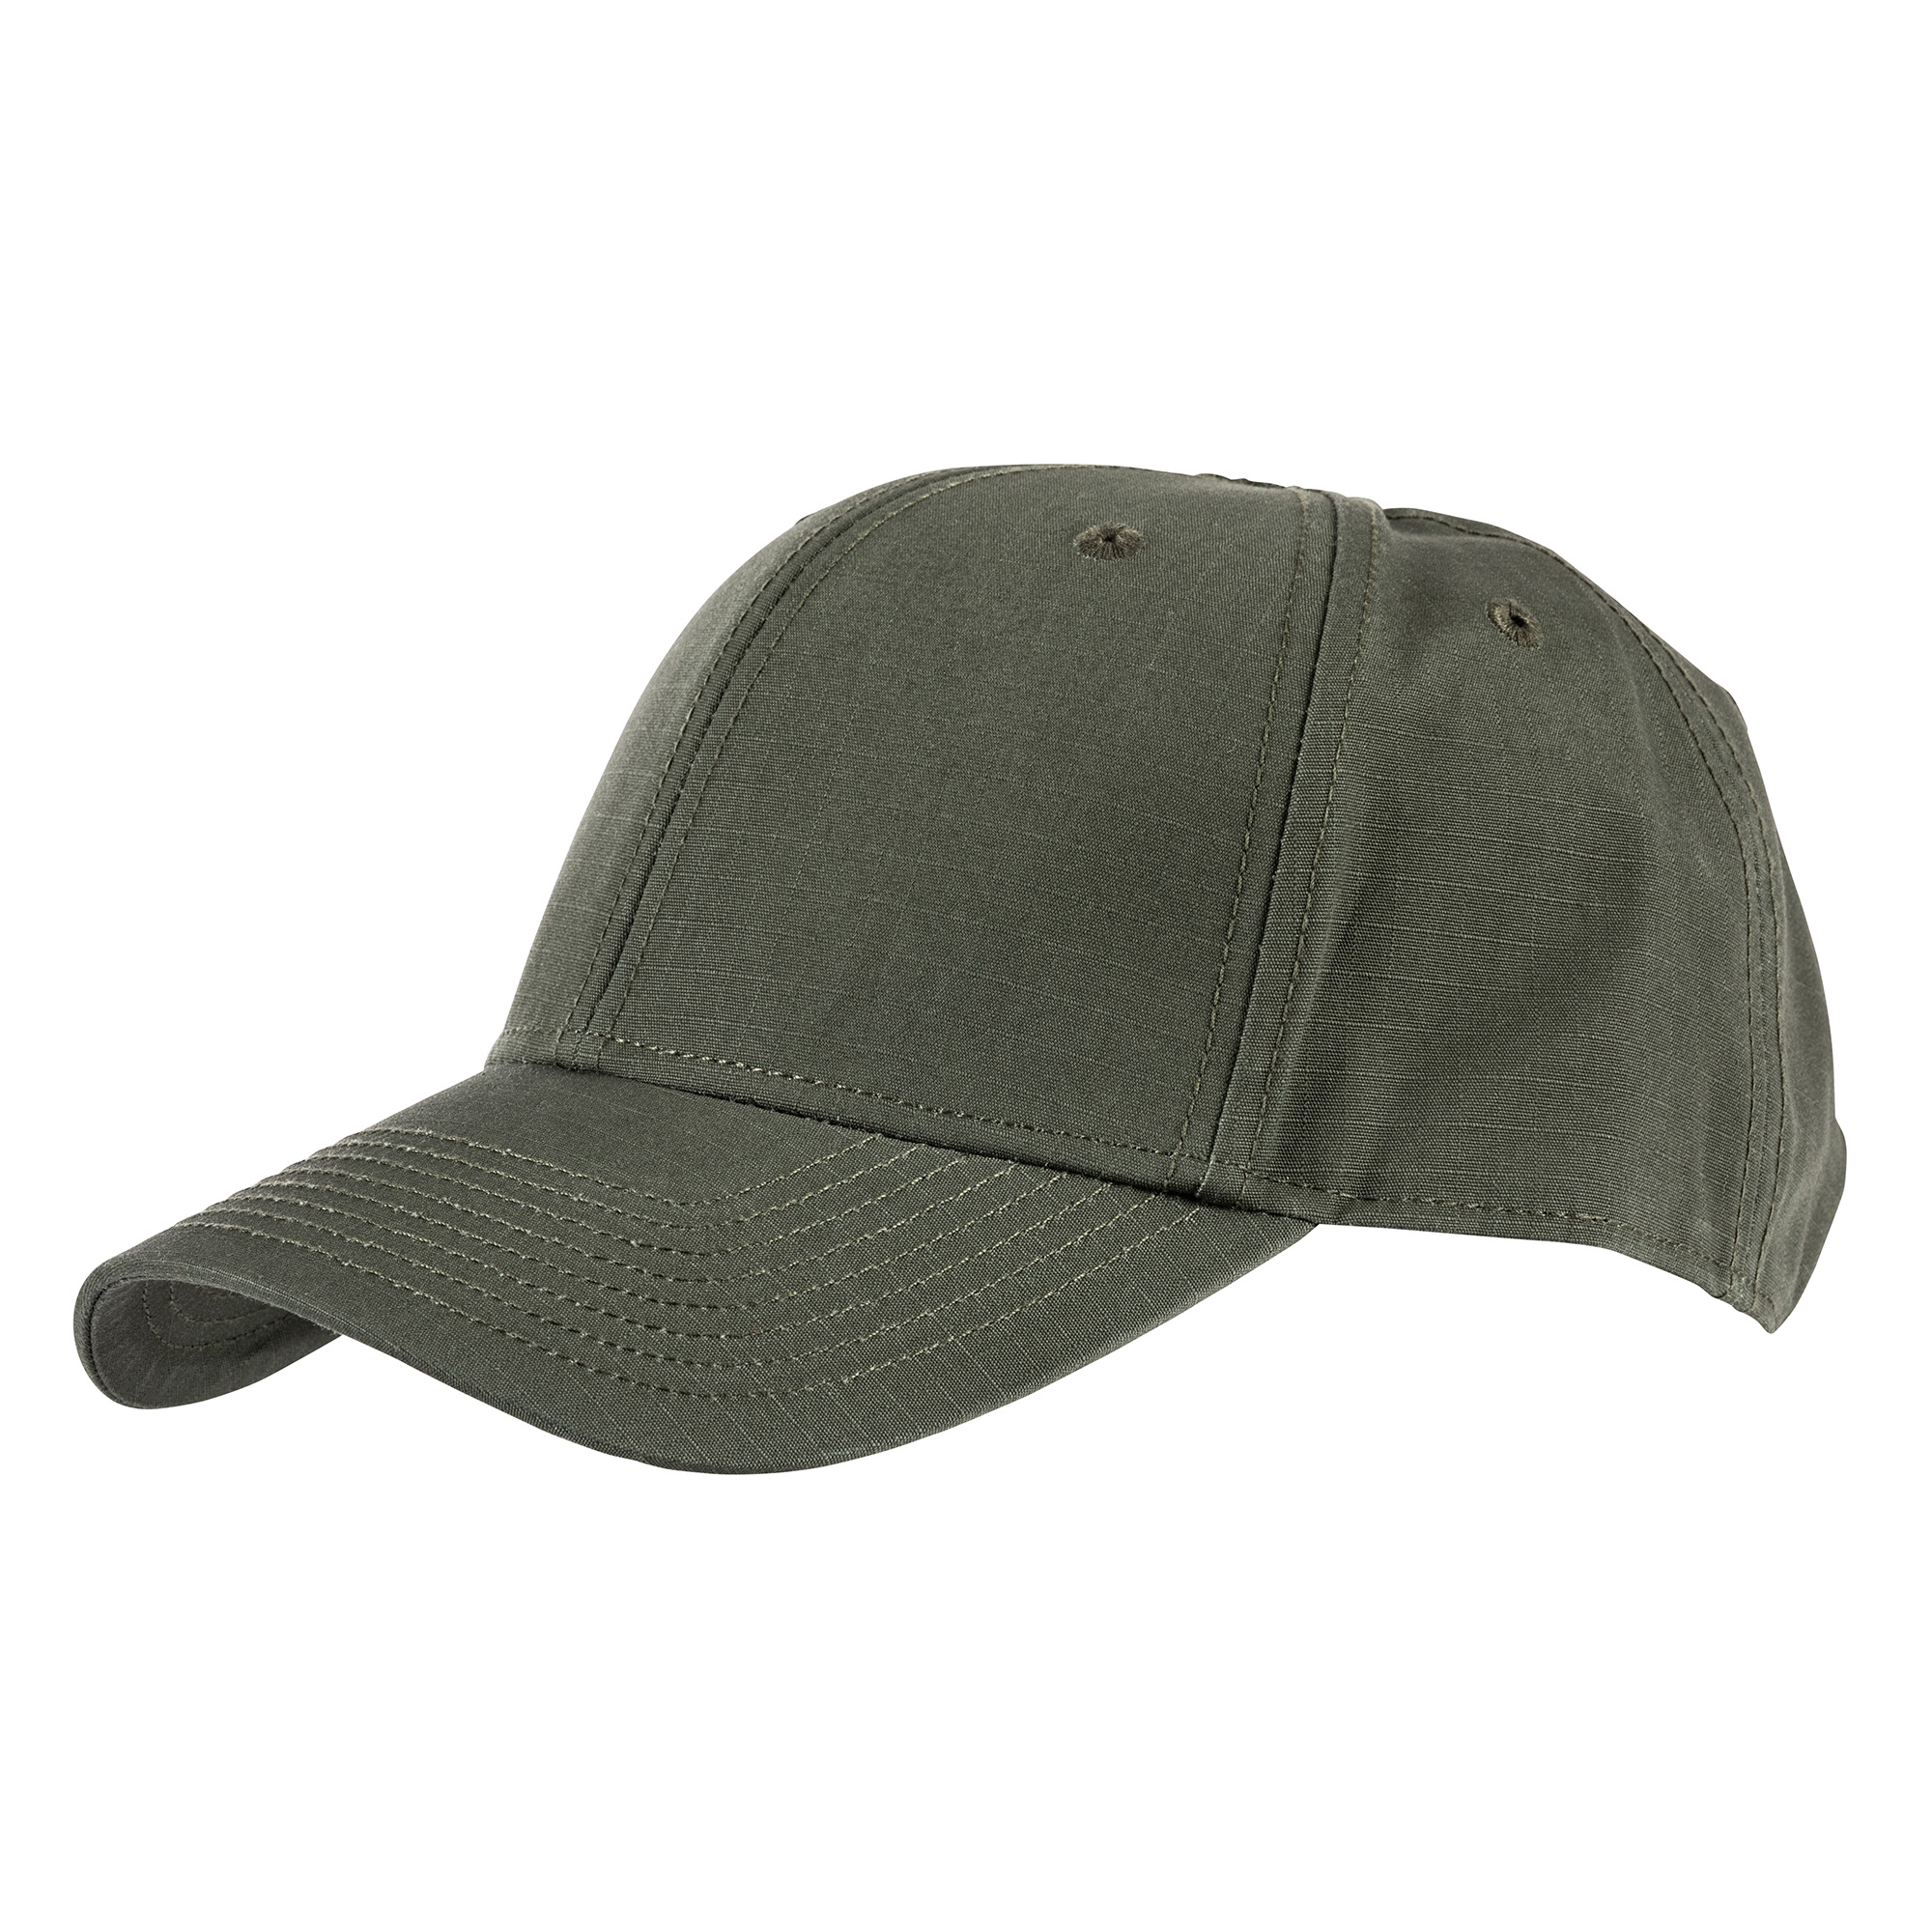 5.11 Tactical Men TACLITE Uniform Cap (Green)